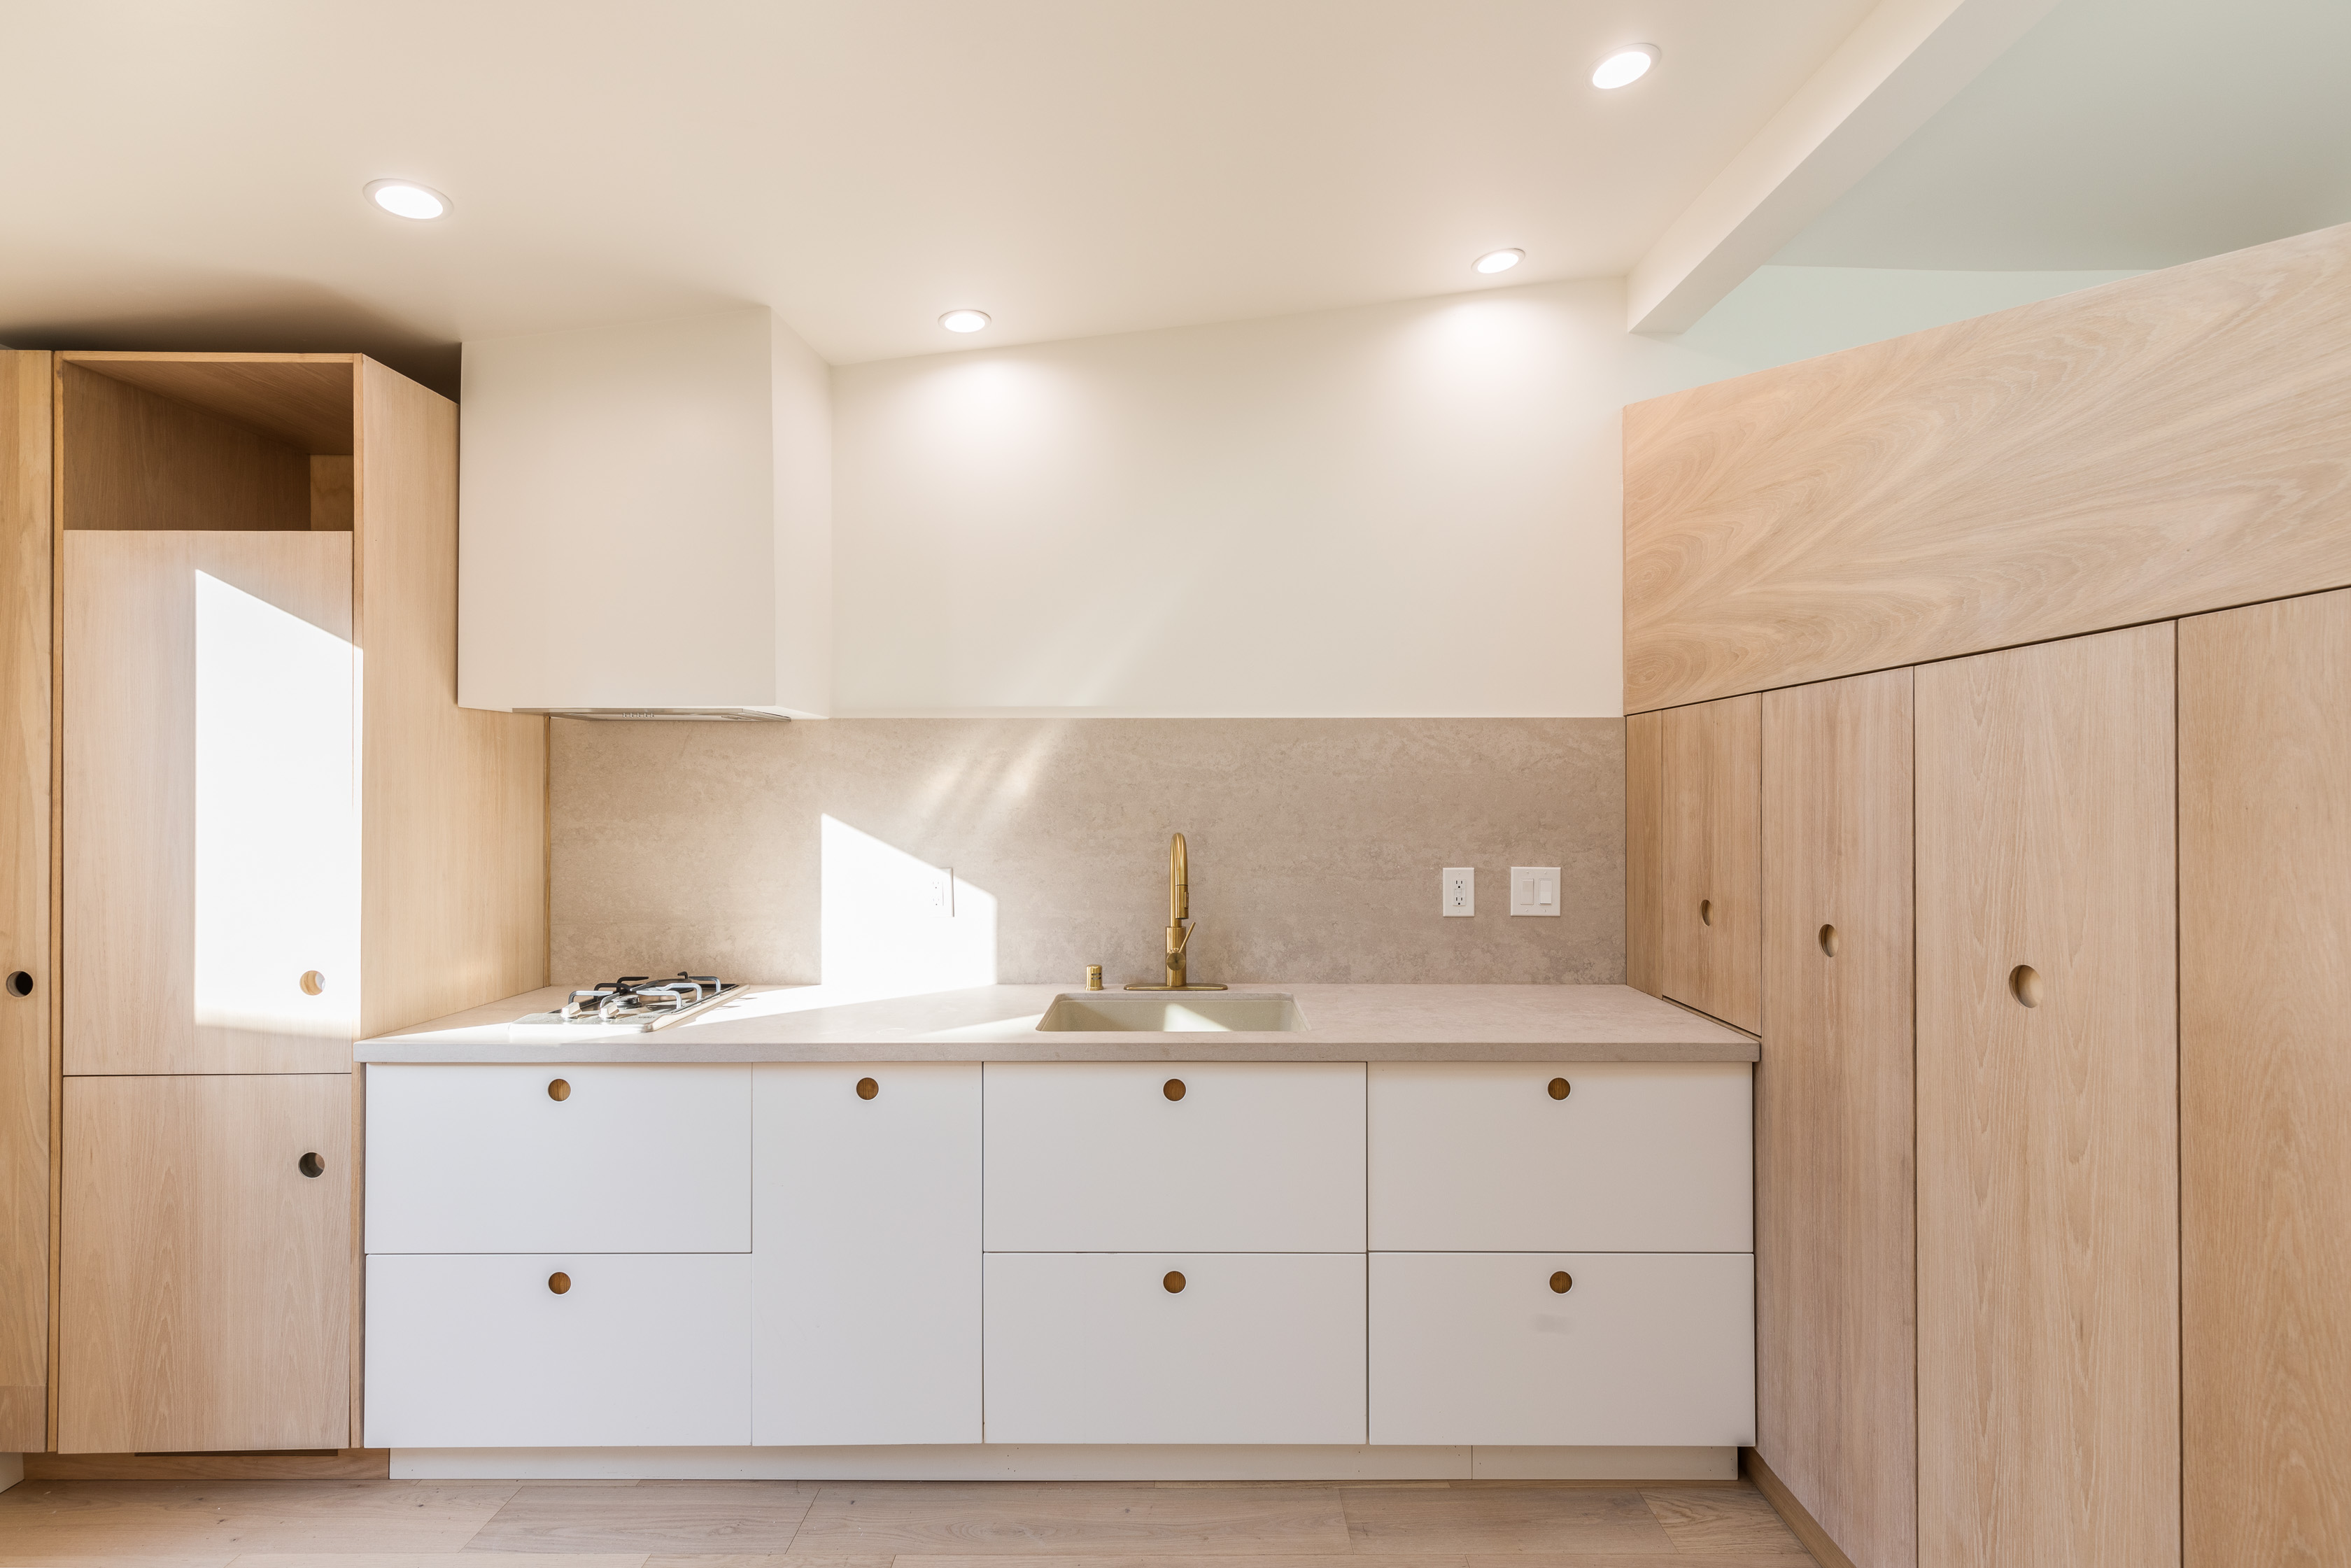 Architecturally Designed Studio | Minimalistic & Modern | Private Fenced In Deck | AC Included